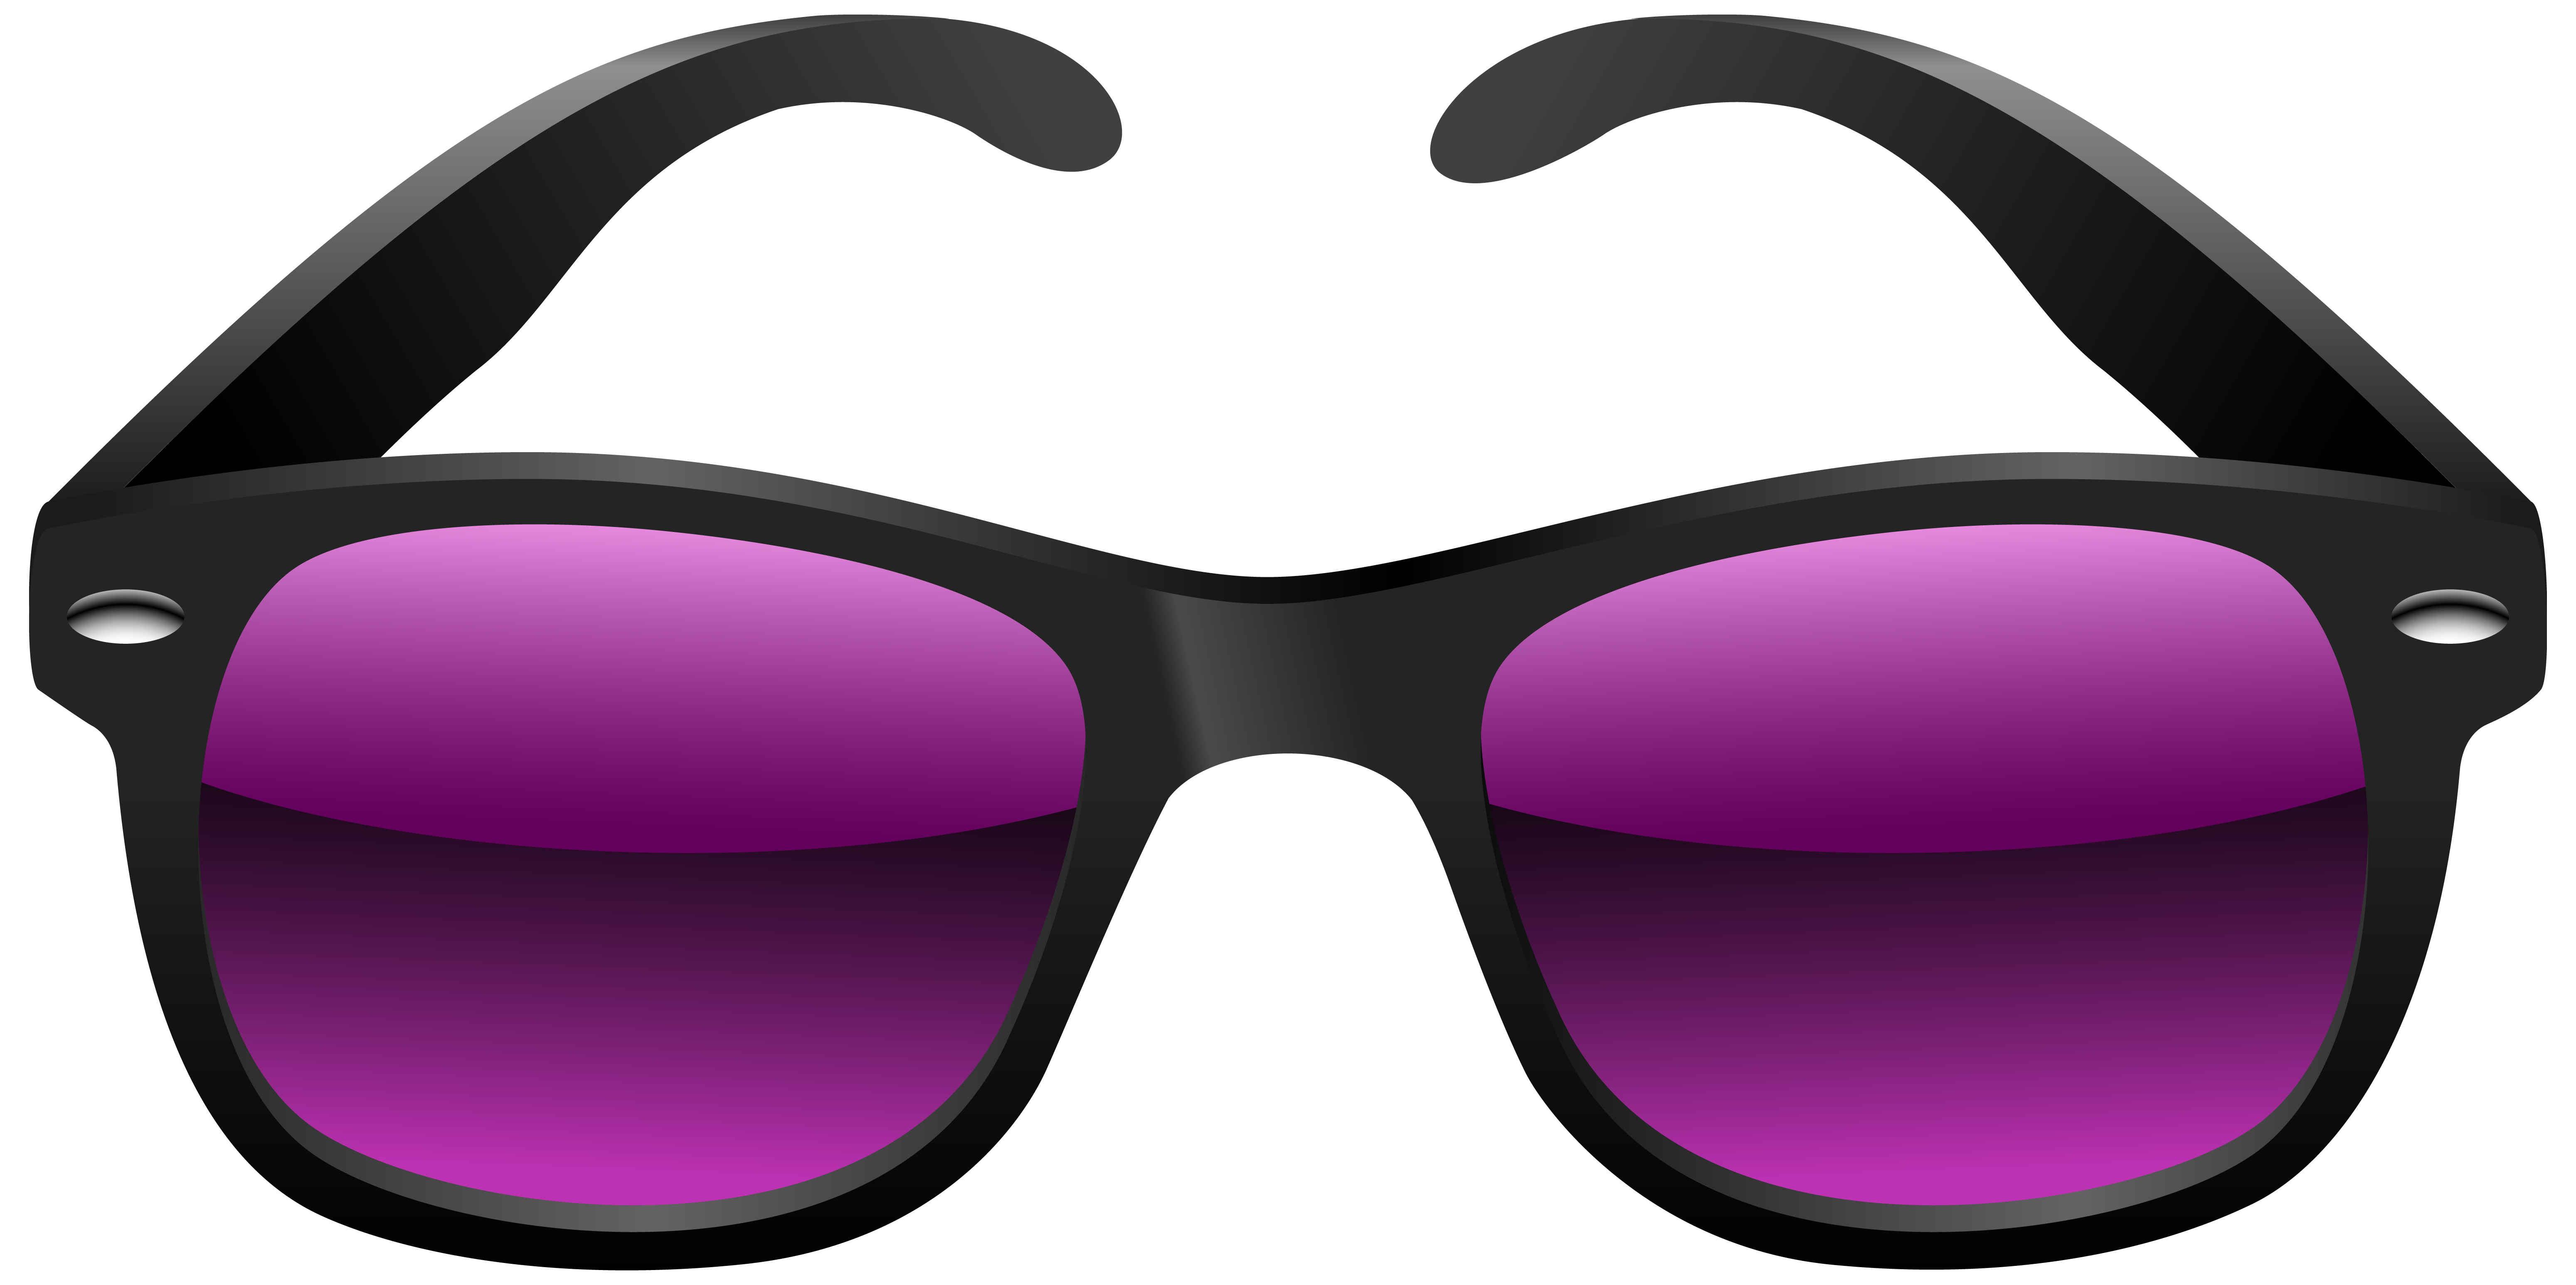 Black and Purple Sunglasses PNG Clipart Image | Gallery ... vector black and white download